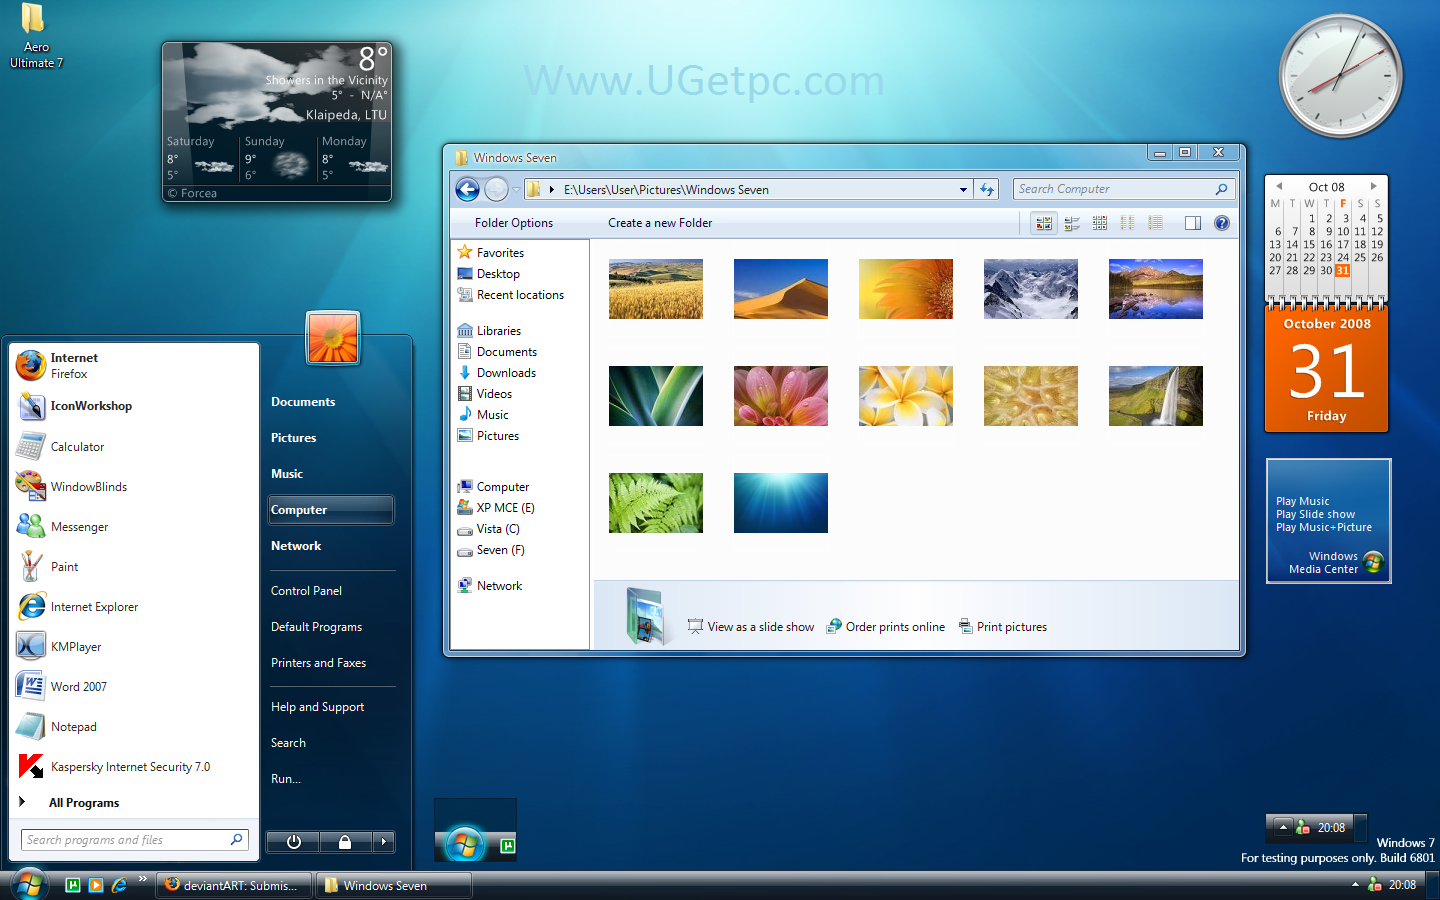 Windows-7-product-key-pic-UGetpc